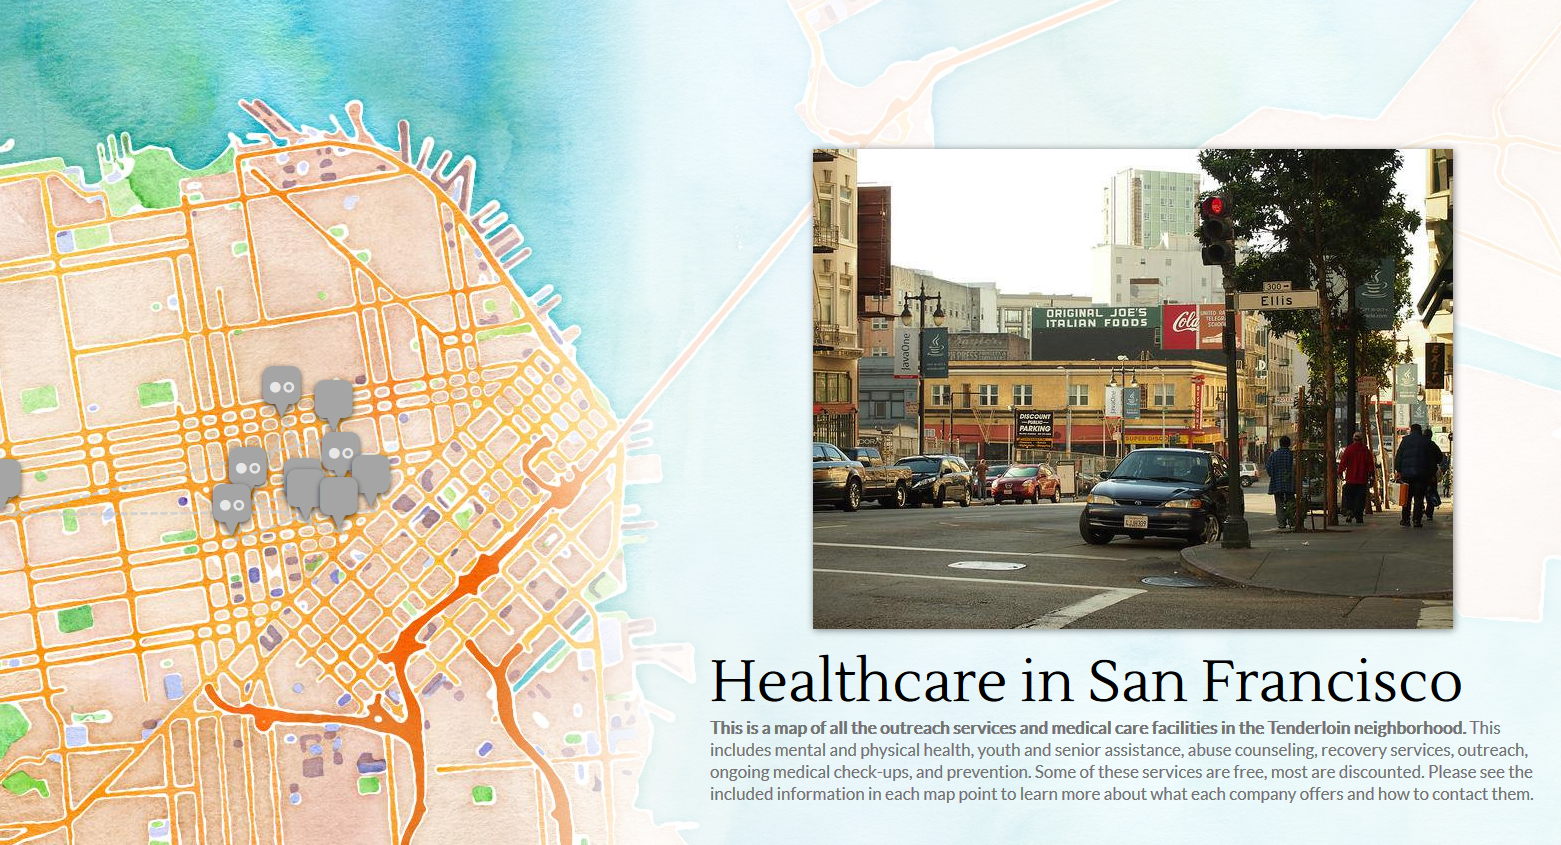 San Francisco Healthcare Map